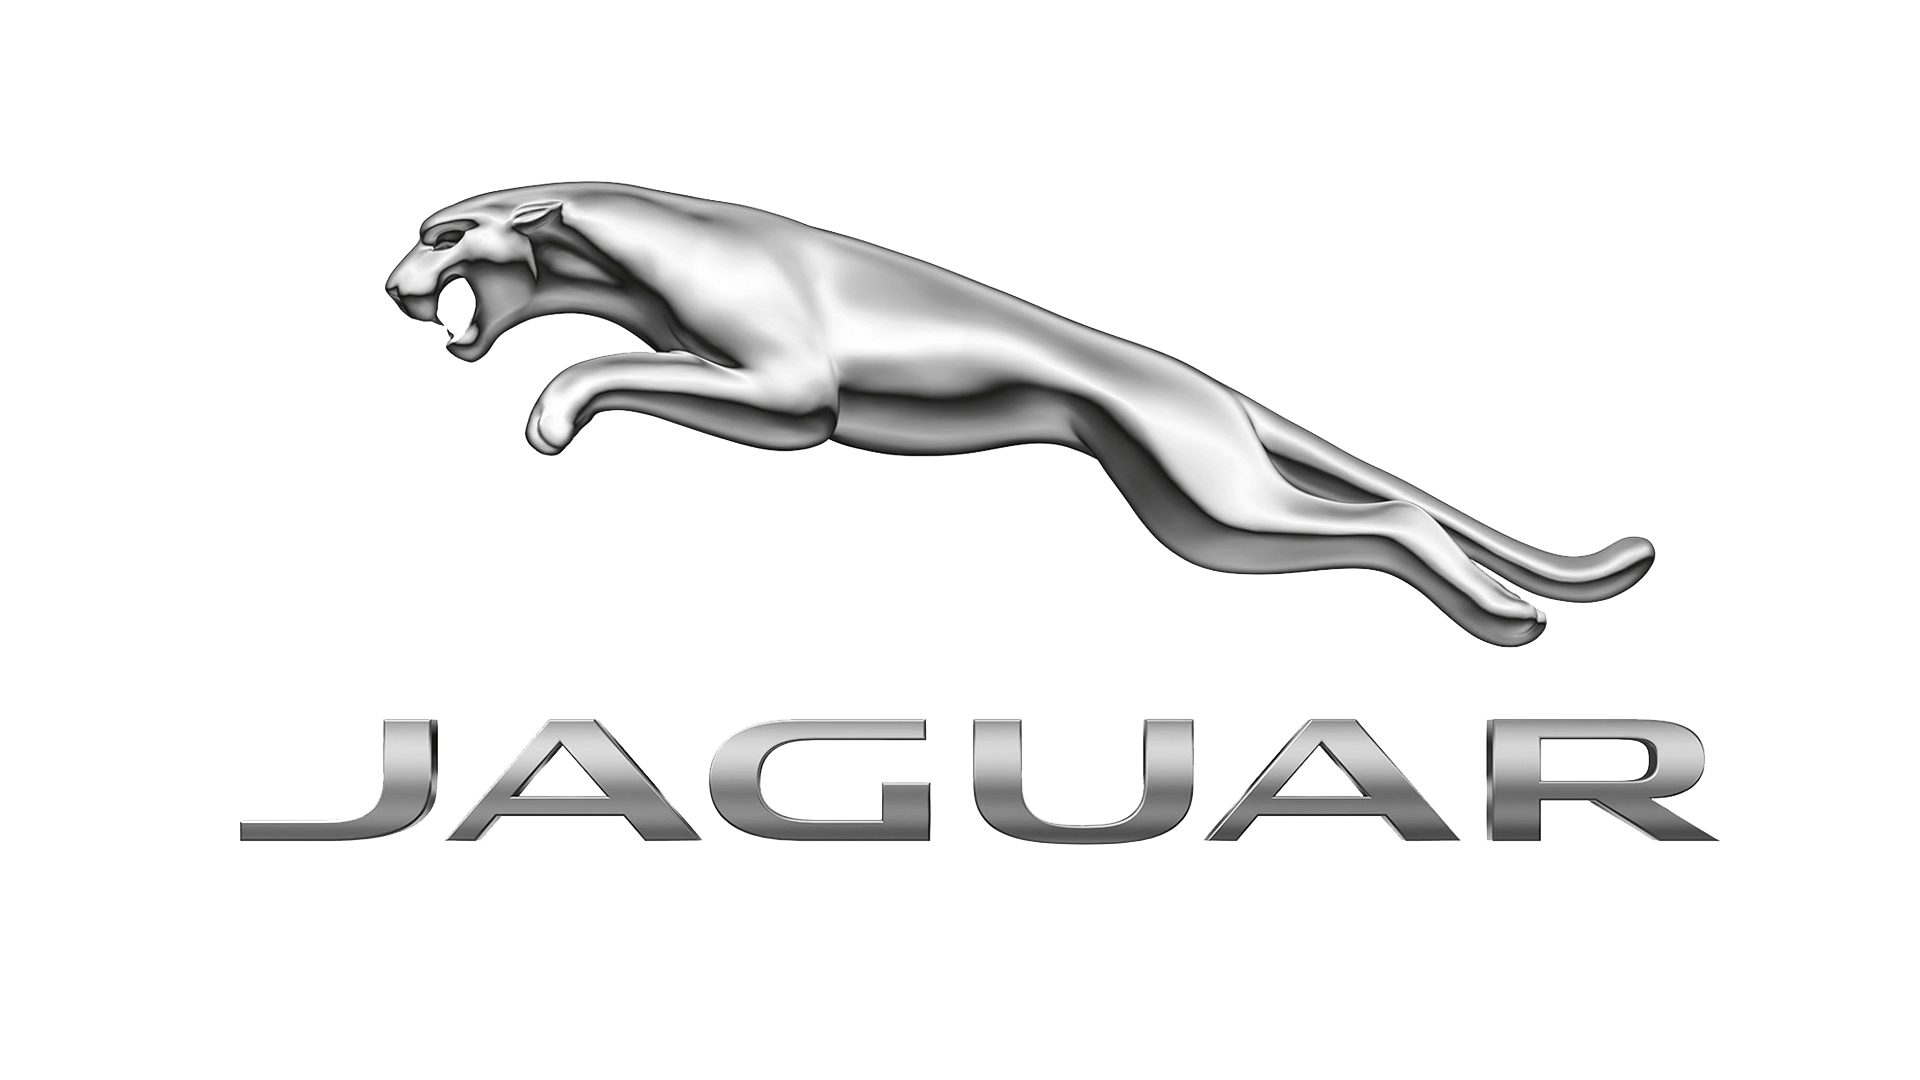 Automotive logo - Jaguar